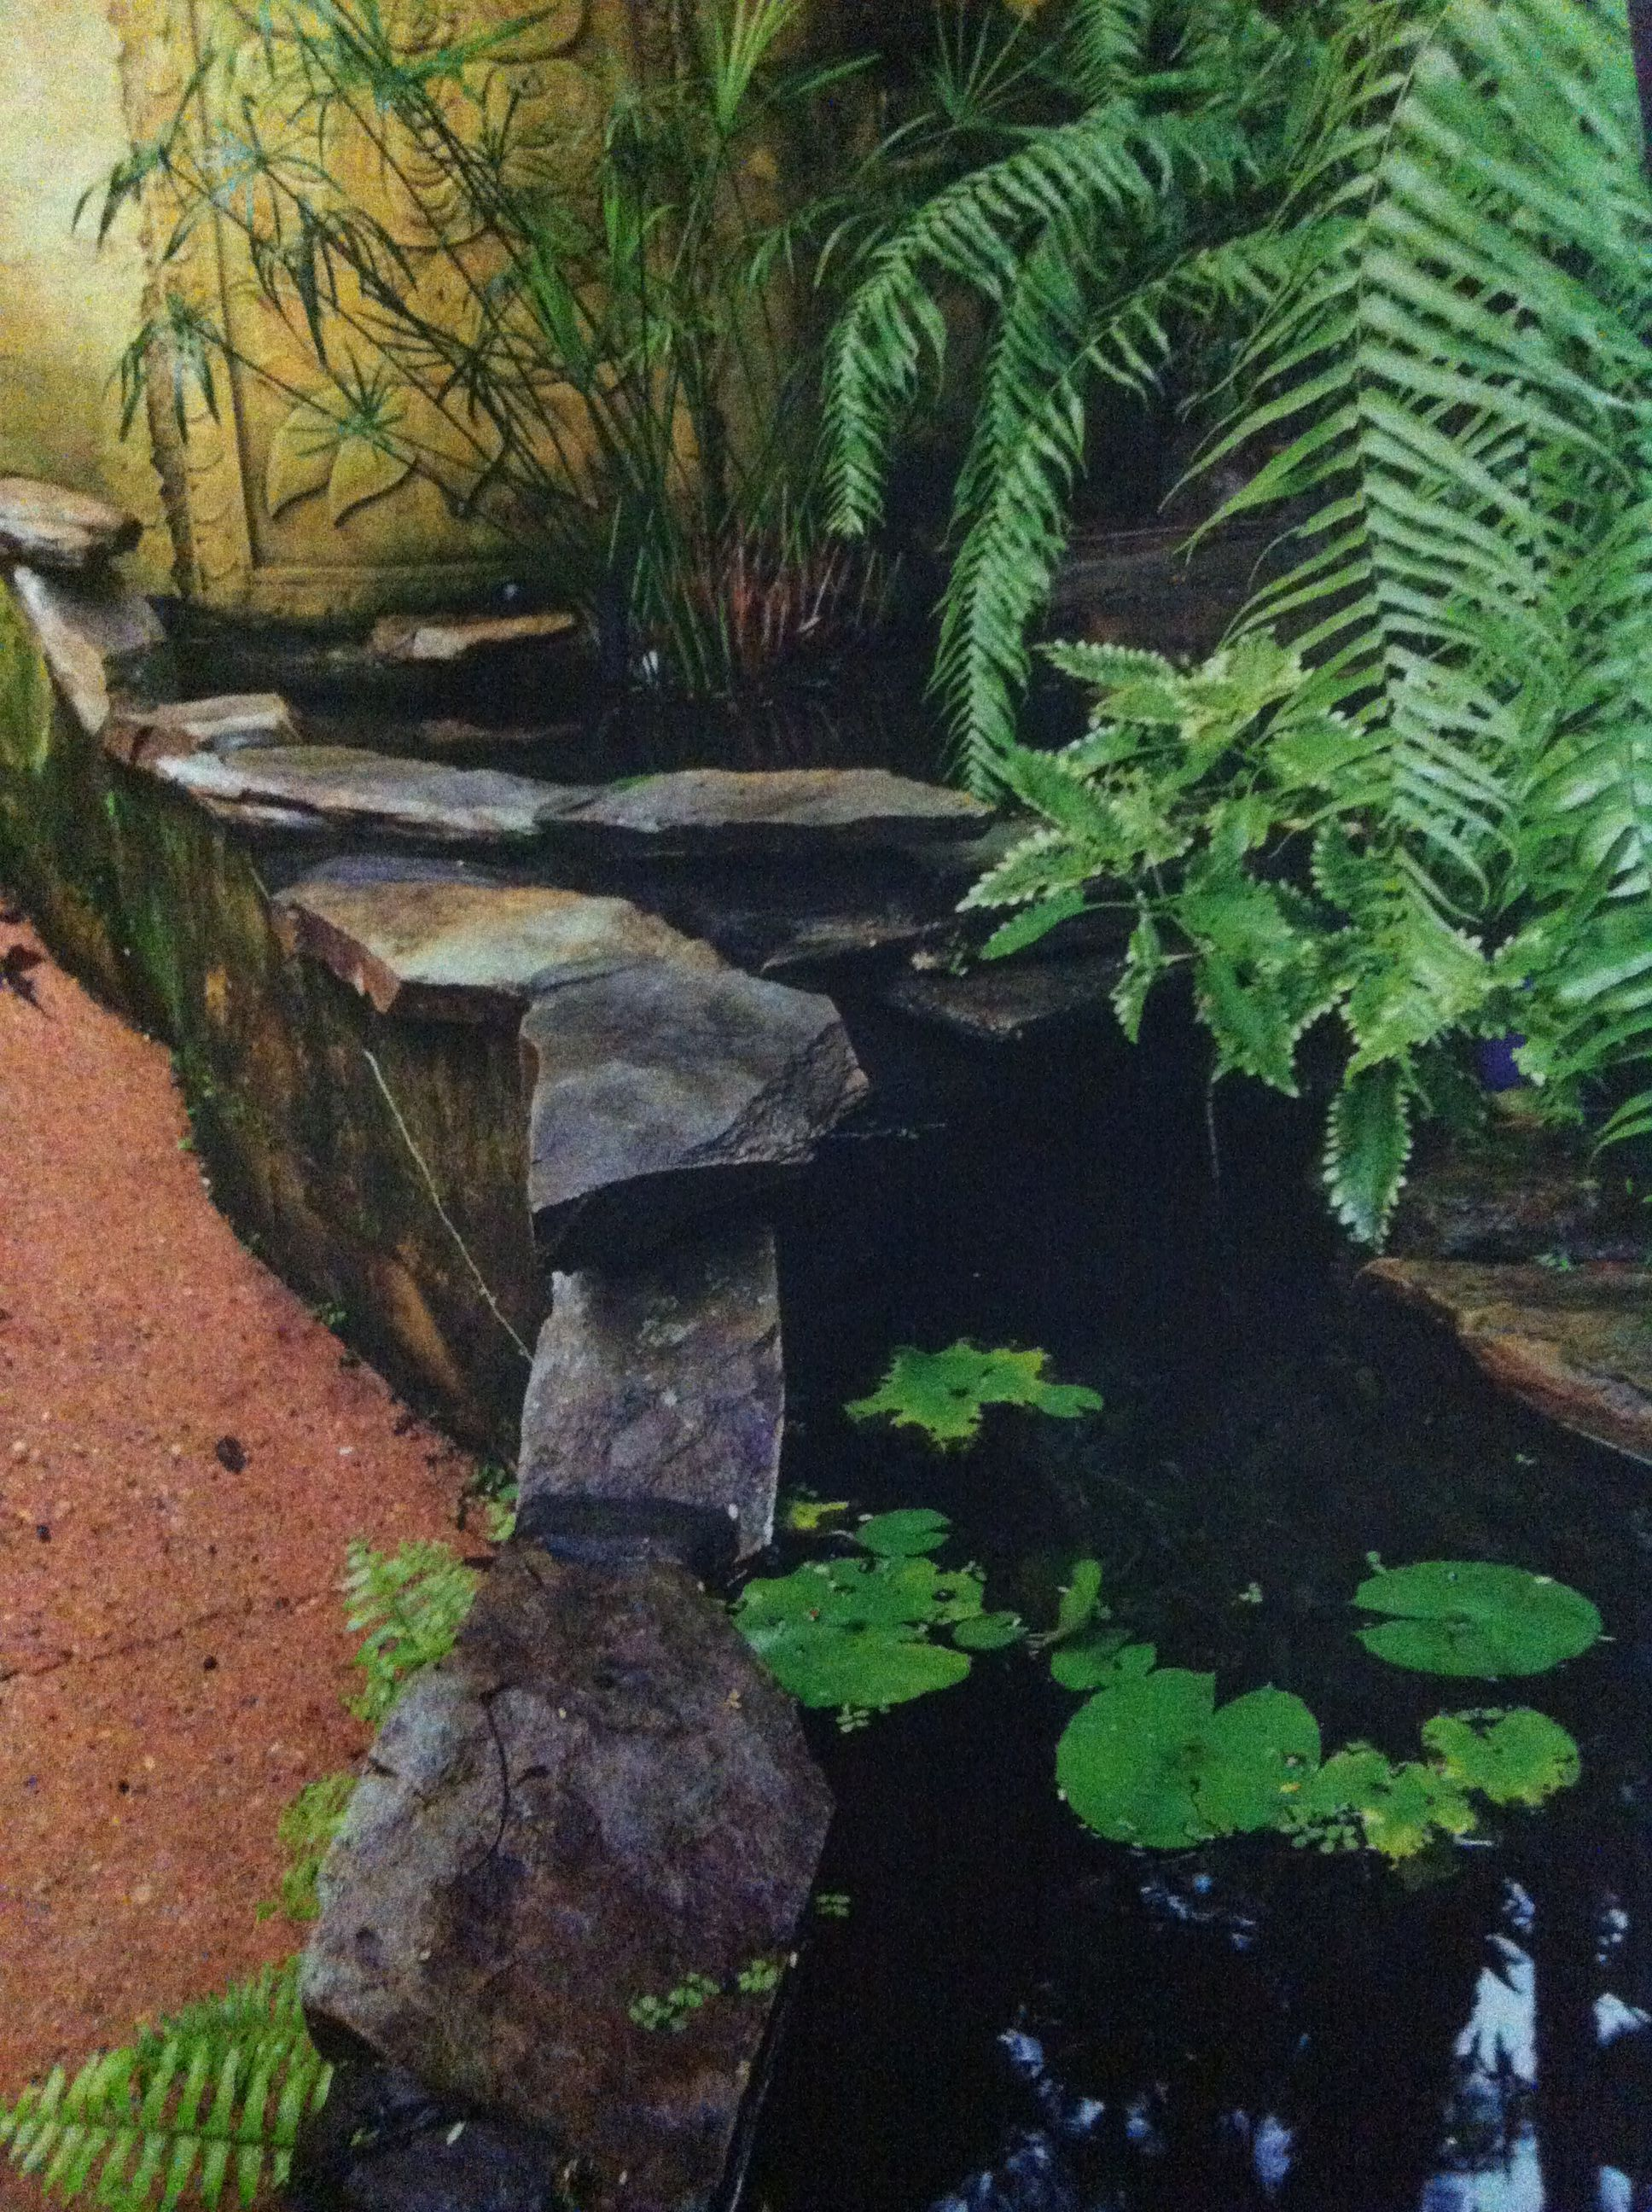 Rock edge pond water features and edging ideas pinterest for Pond edging ideas